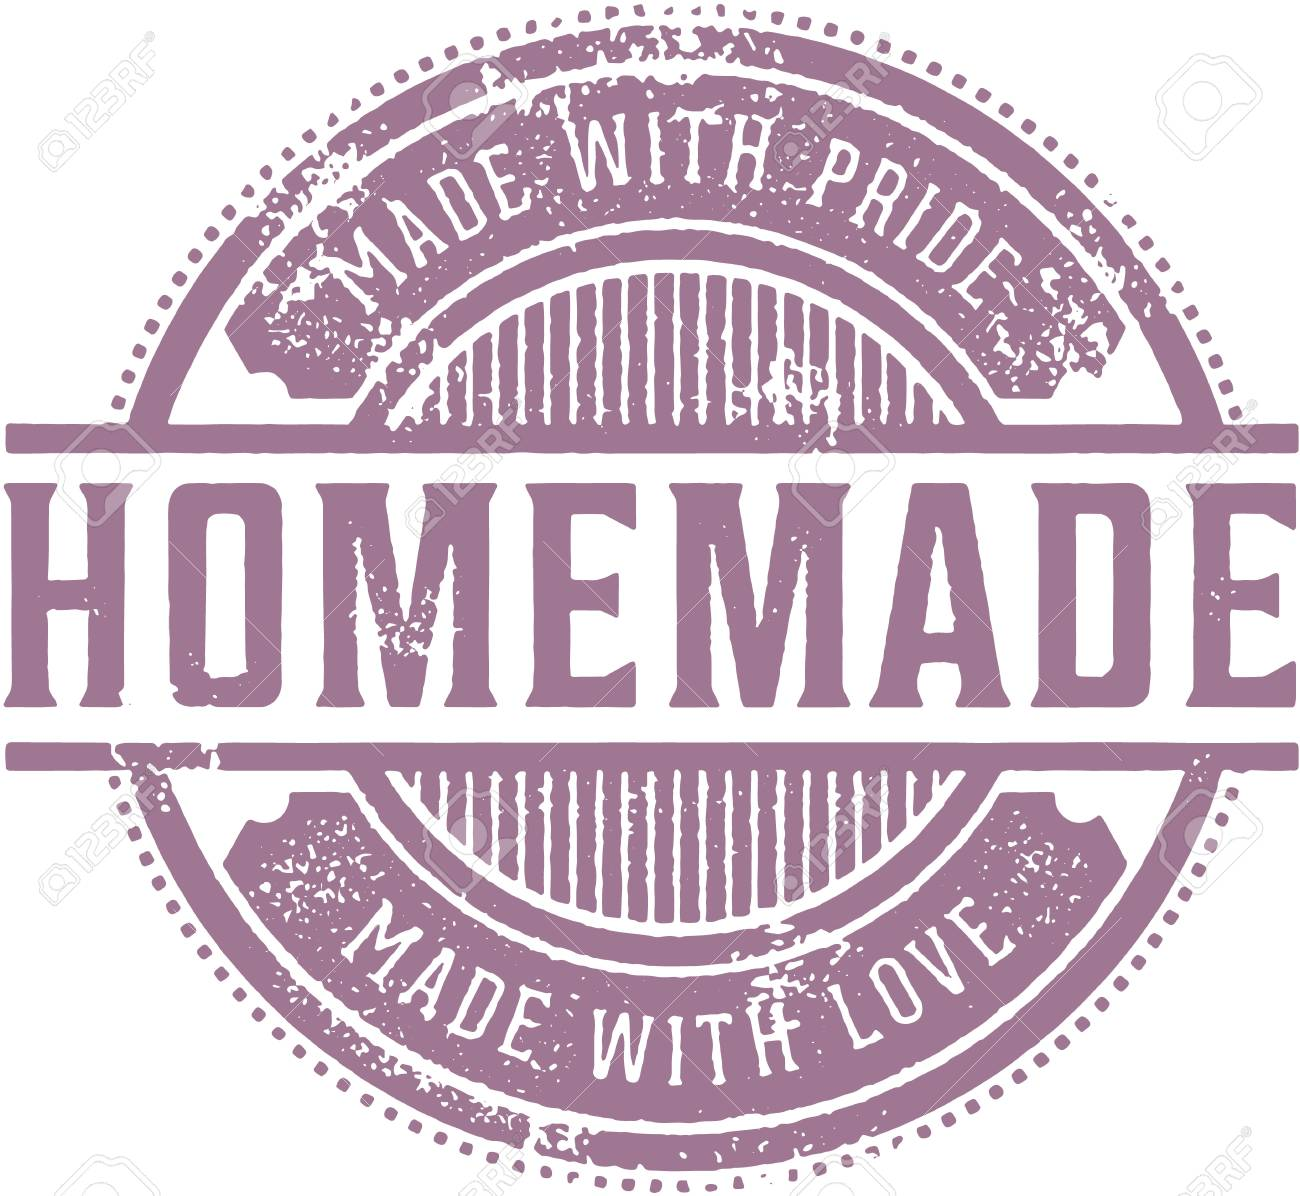 homemade vintage product label royalty free cliparts, vectors, and